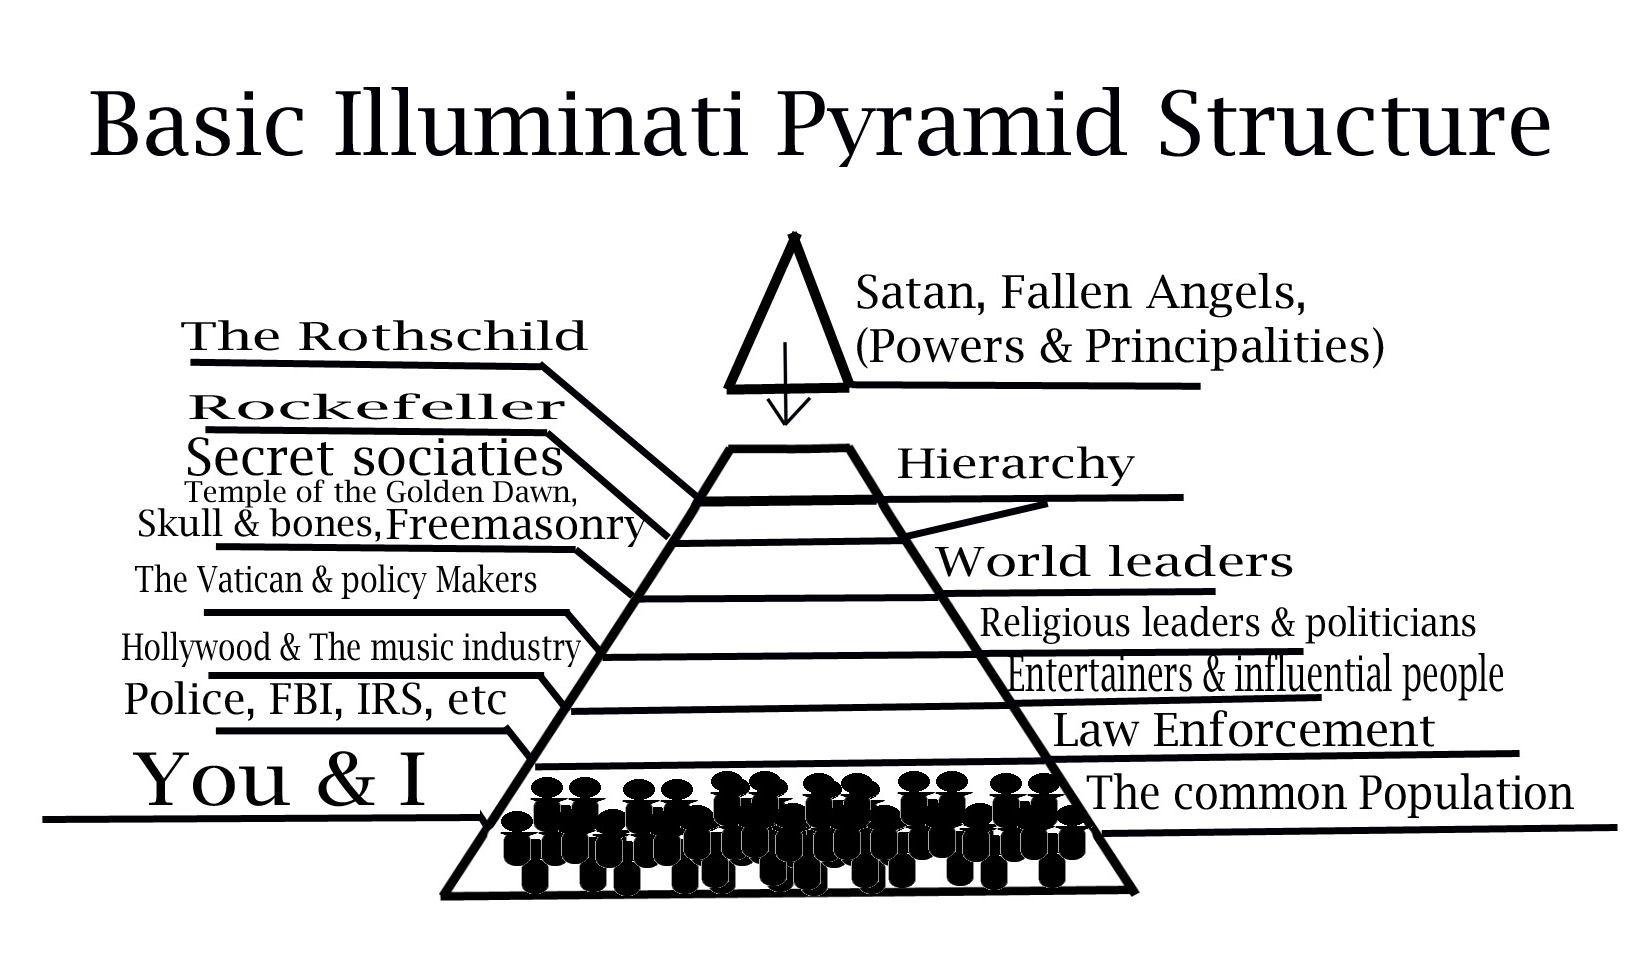 https://thetruthandlight.files.wordpress.com/2013/09/basic-pyramid-structure.jpg